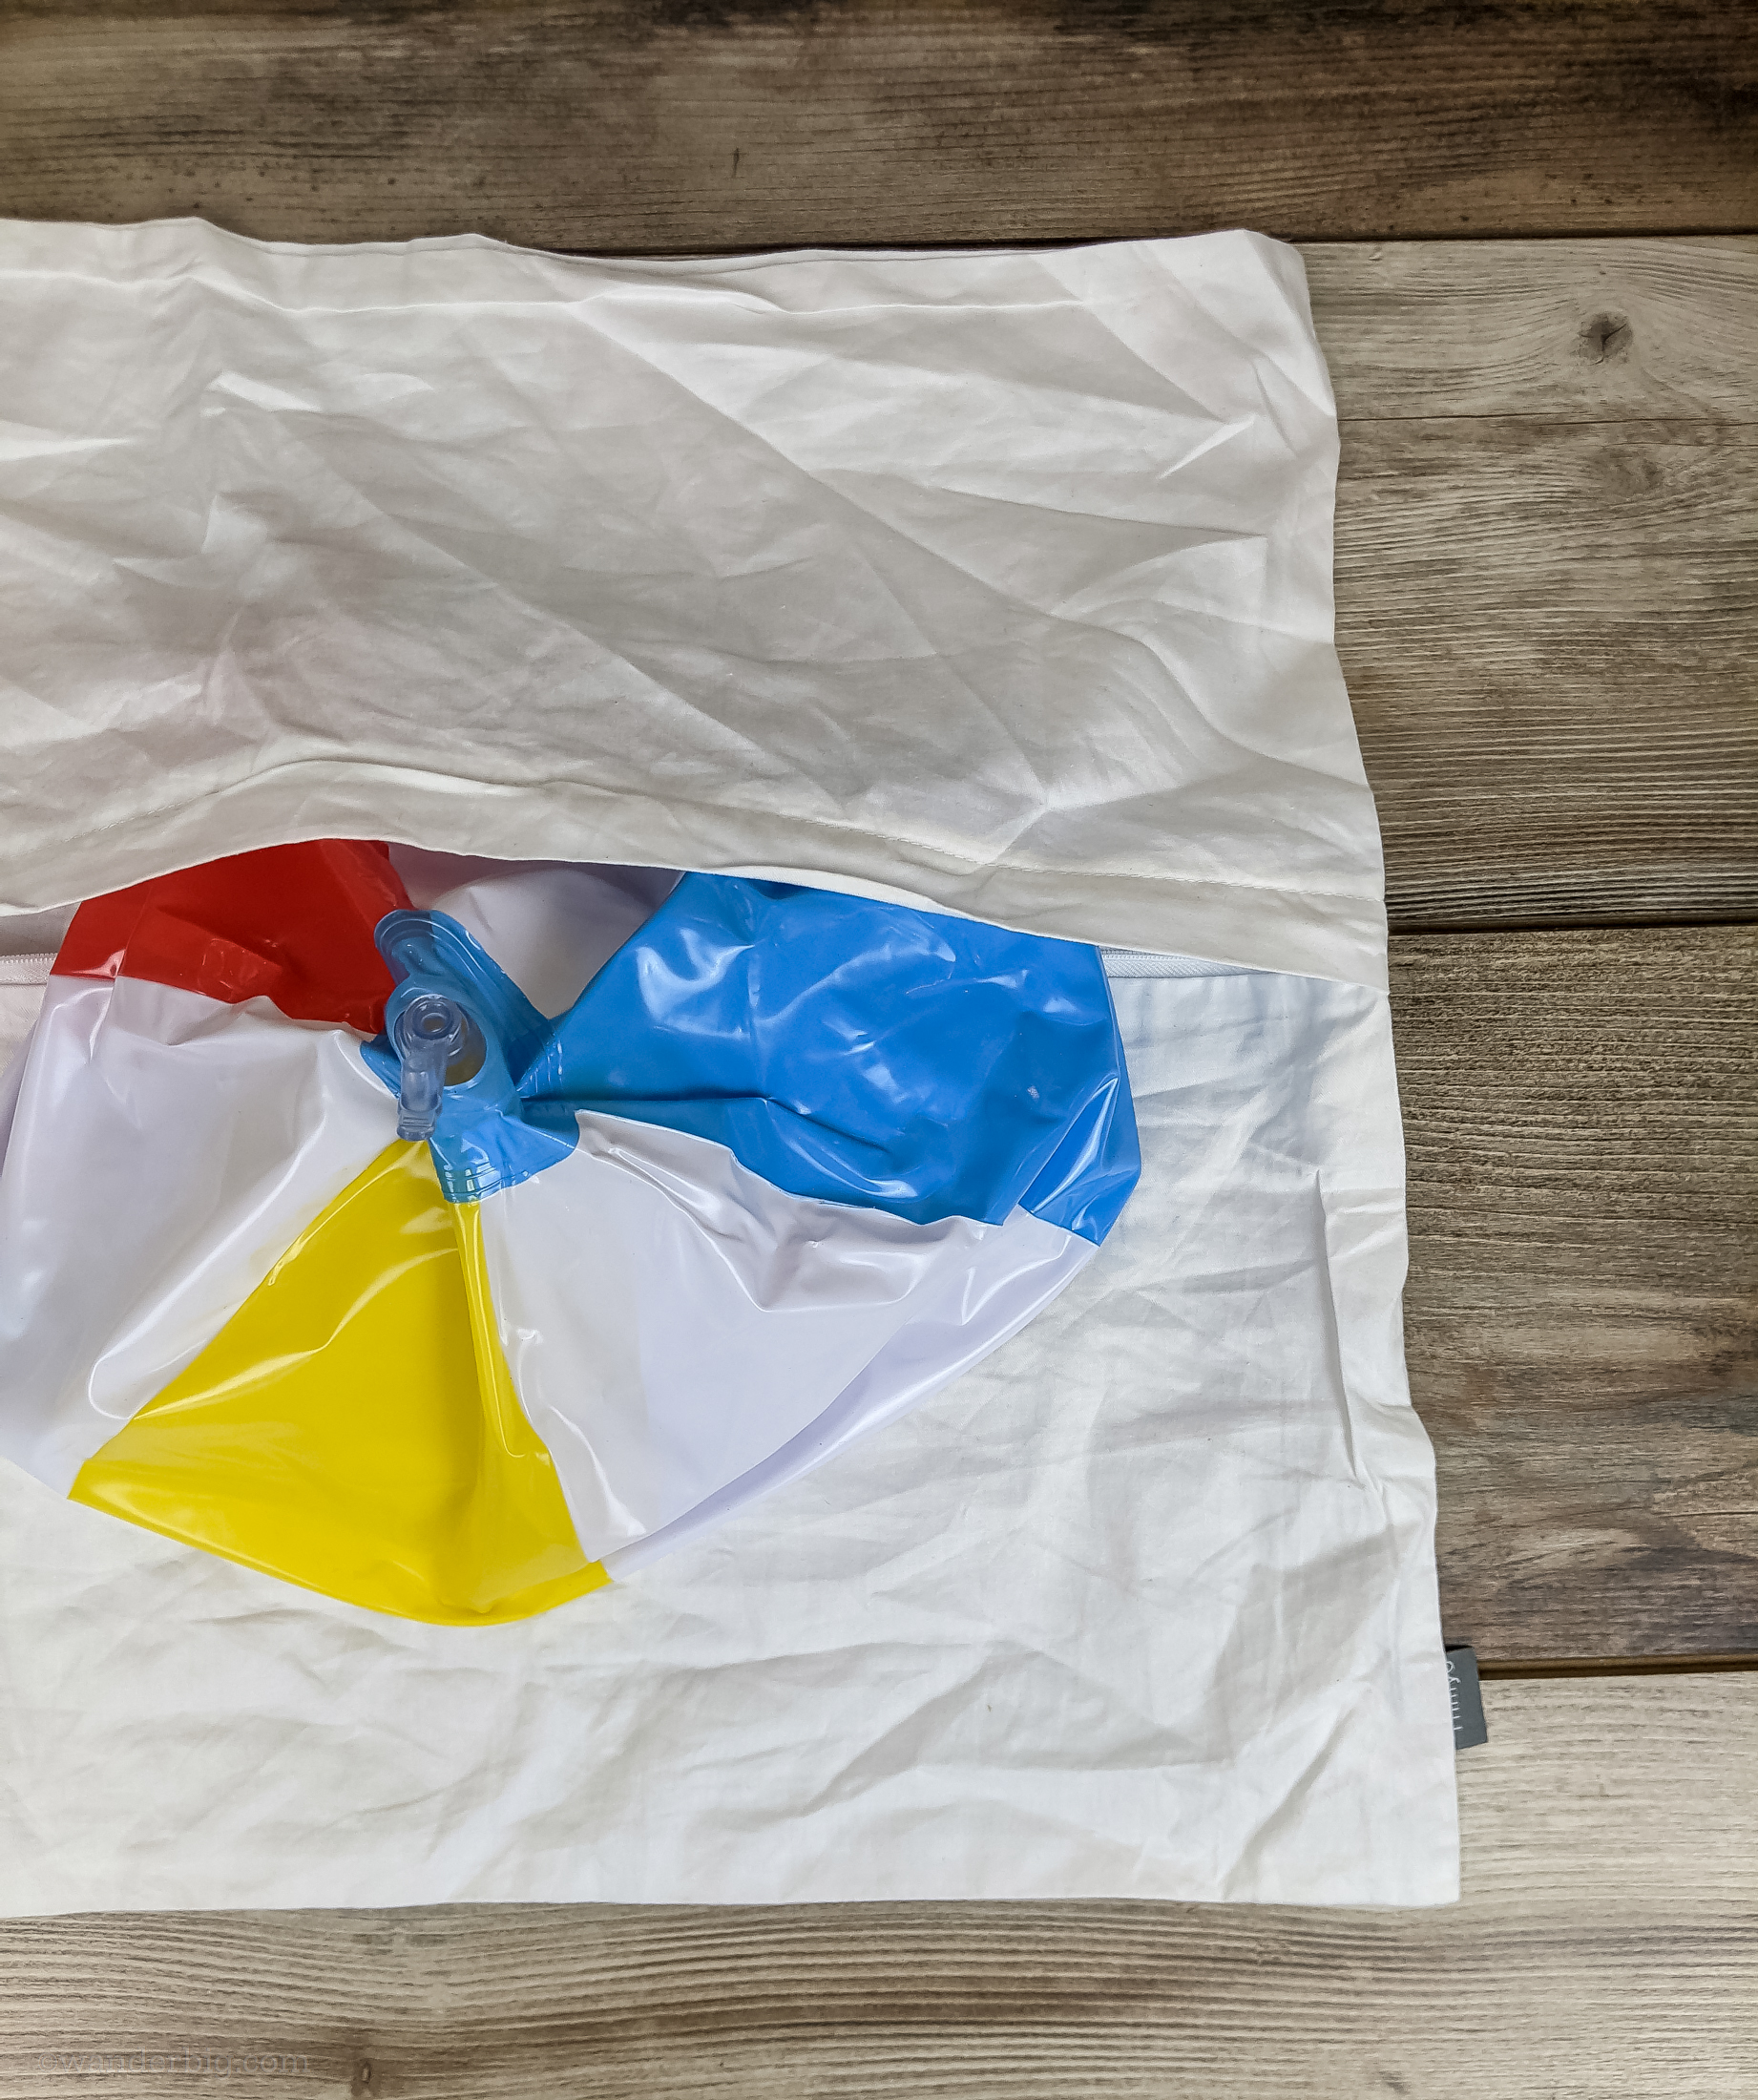 An uninflated beach ball being inserted into a cotton pillowcase to form a diy travel pillow.